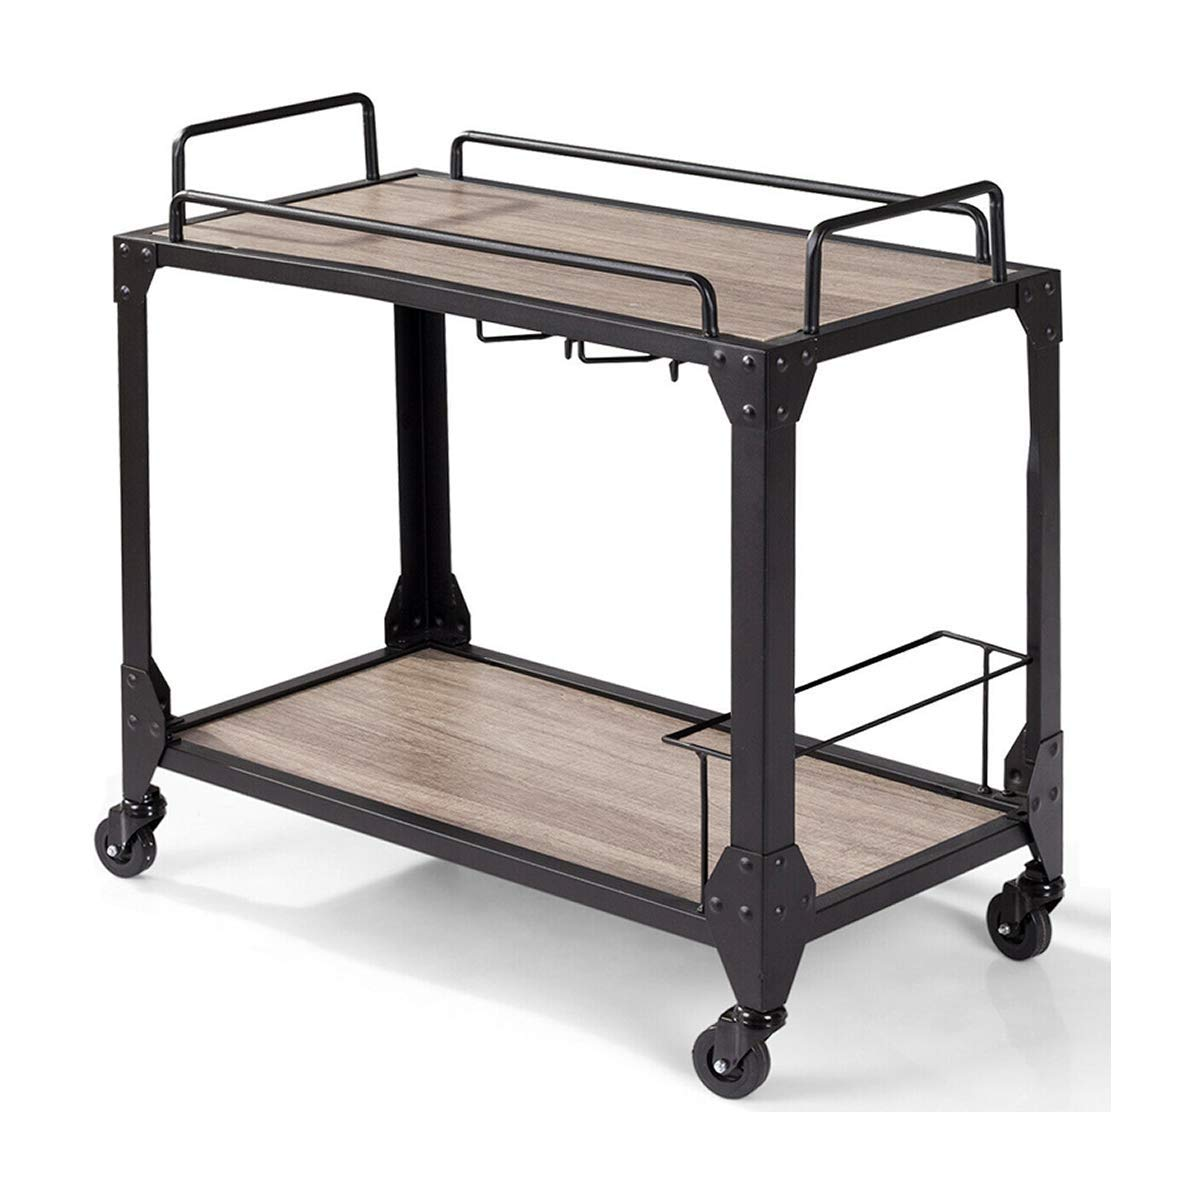 Cirocco 2 Tiers Wooden Rolling Bar Serving Cart Kitchen Island Shelves Storage Rack Wine Holder Glass Hanger | Heavy Wood Support 130Lbs Industrial Rustic Versatile | for Home Bar Restaurant Pub Cafe by Cirocco